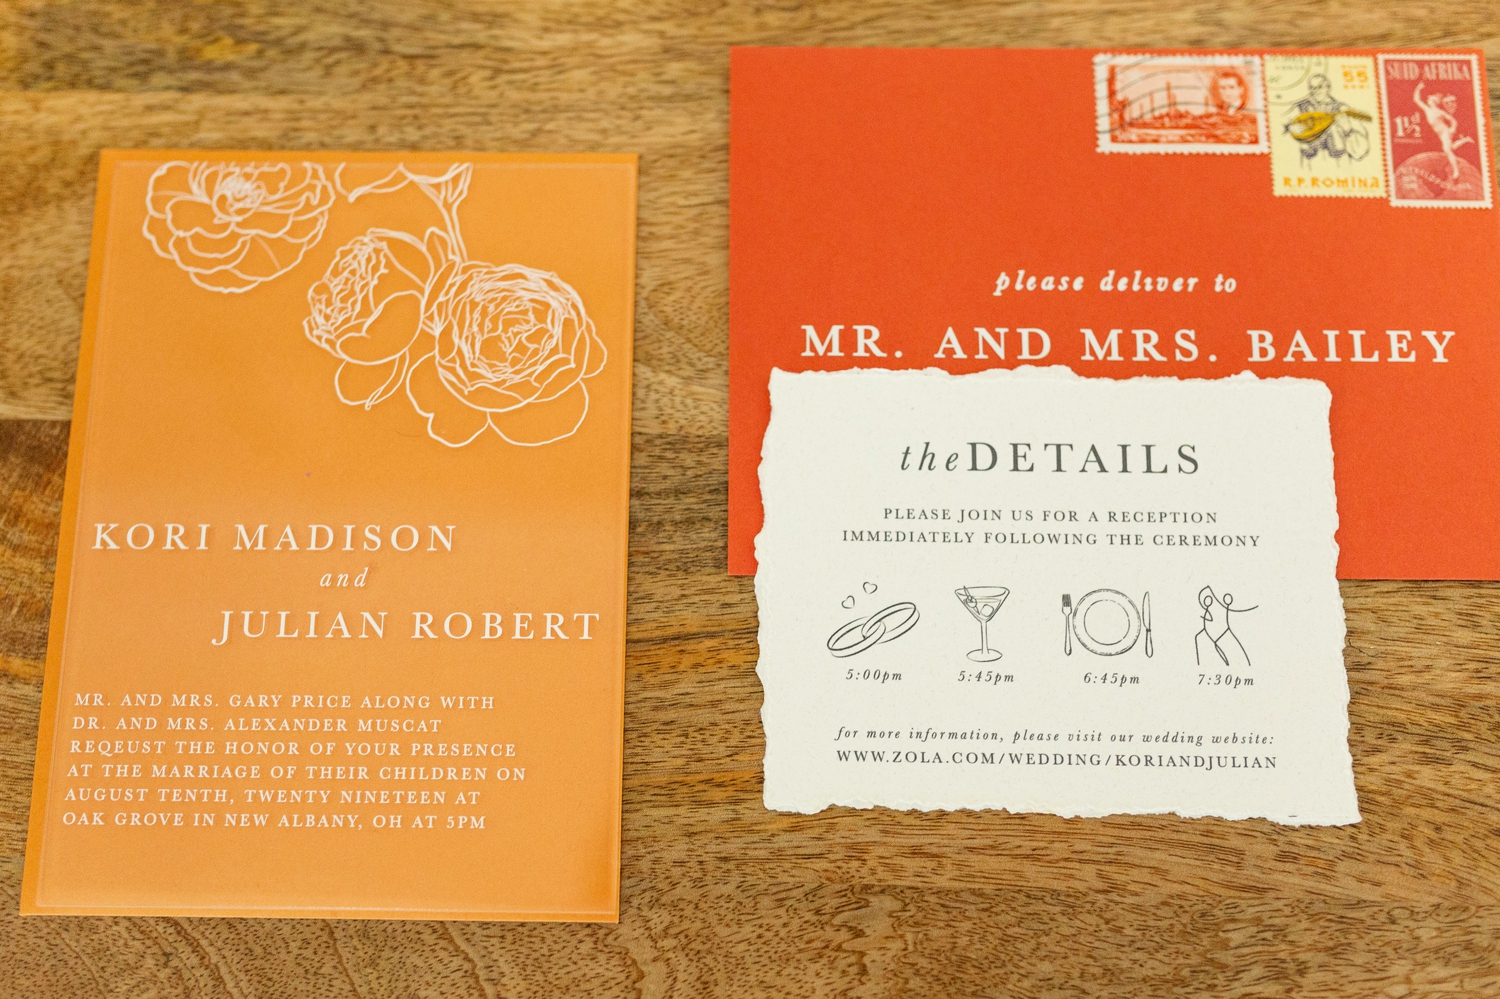 vivid invitation suite, orange invitation card, yellow wedding cake, wedding at jorgensen farms, summer wedding inspiration, jorgensen farms wedding, westerville wedding photographer, columbus wedding photographer, wedding photographer in columbus, jorgensen farms oak grove, new albany wedding, ruffled blog, events held dear, old slate farm floral, made with love bridal, b loved bridal, sarah w hair, angie warren artistry, aiden and grace, sigal models, unica forma, even source rentals